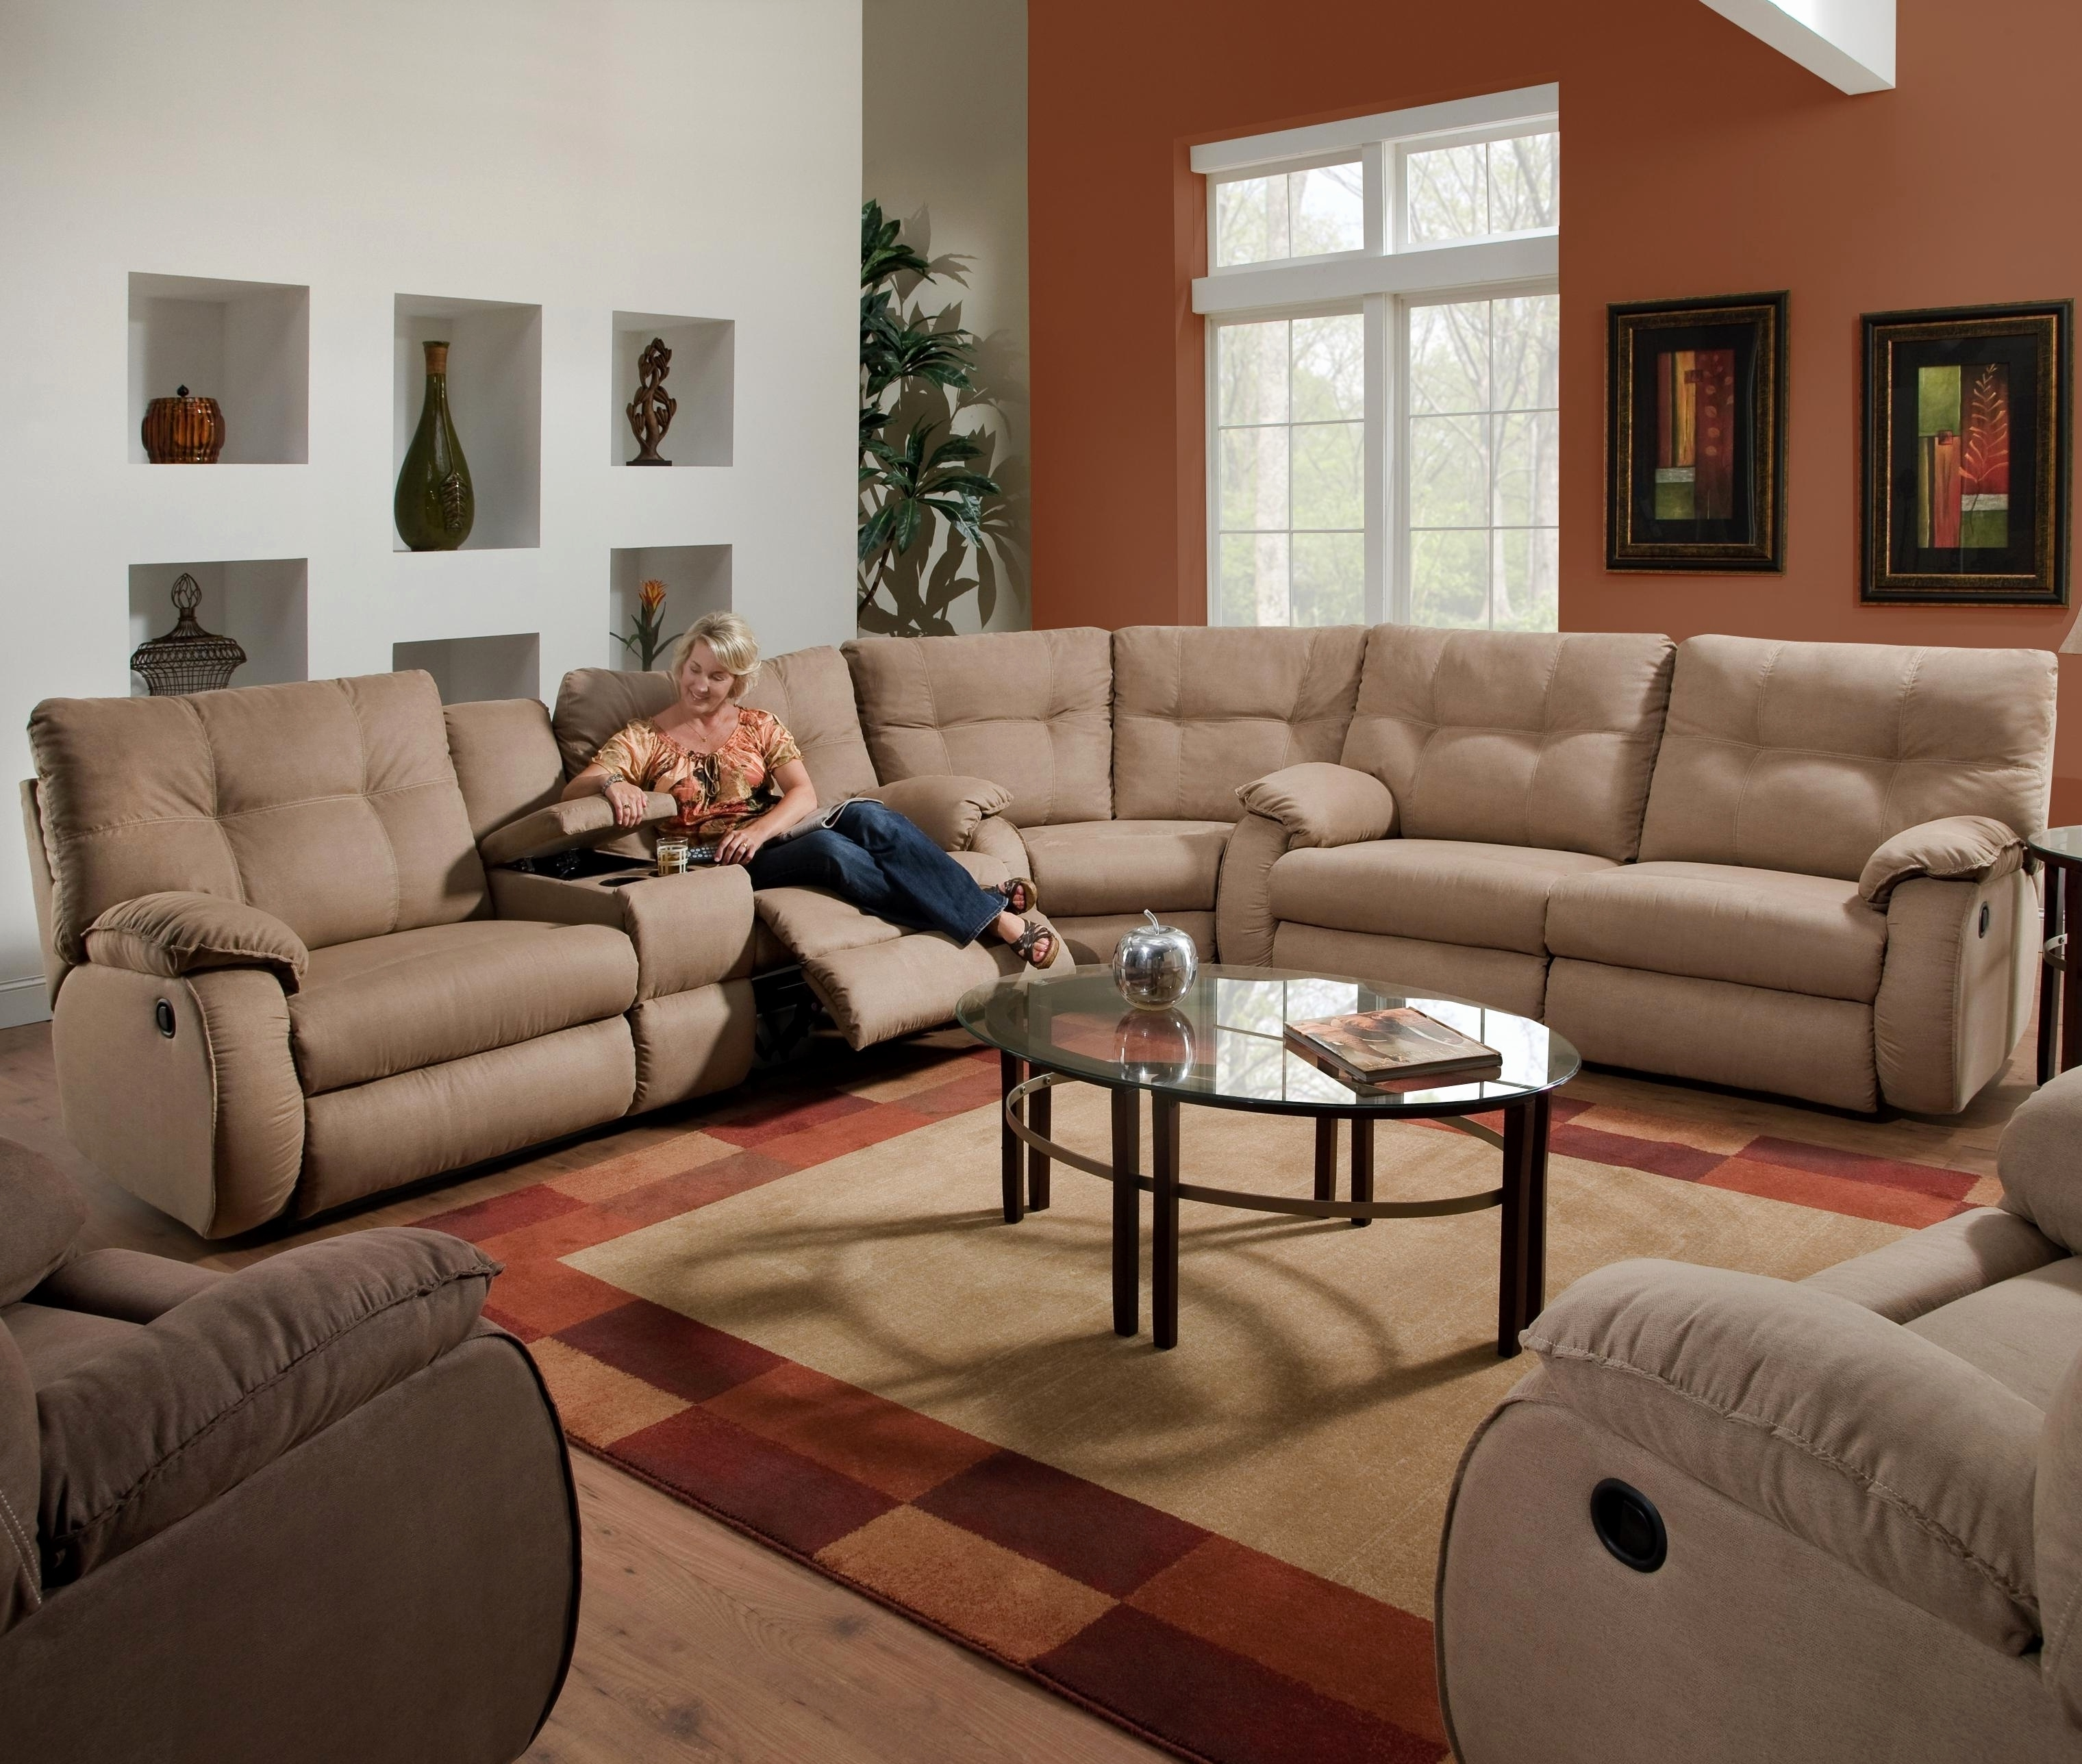 Sectional Sofas For Small Spaces With Recliners In Most Recent Inspirational Recliners For Small Spaces 2018 – Couches And Sofas (View 10 of 20)